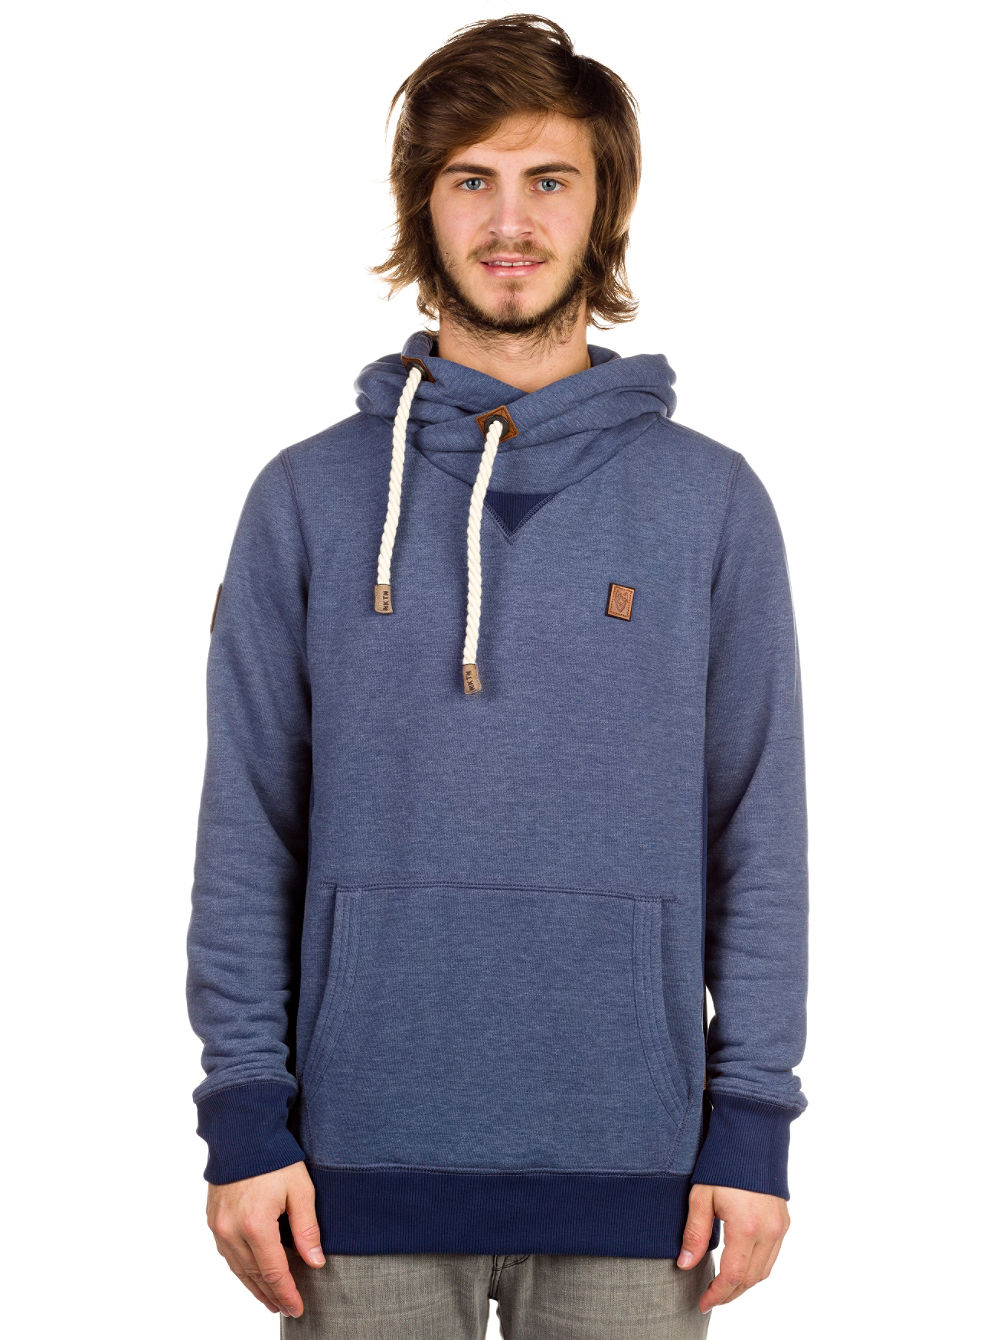 Pommes im Weltall IV Hoodie